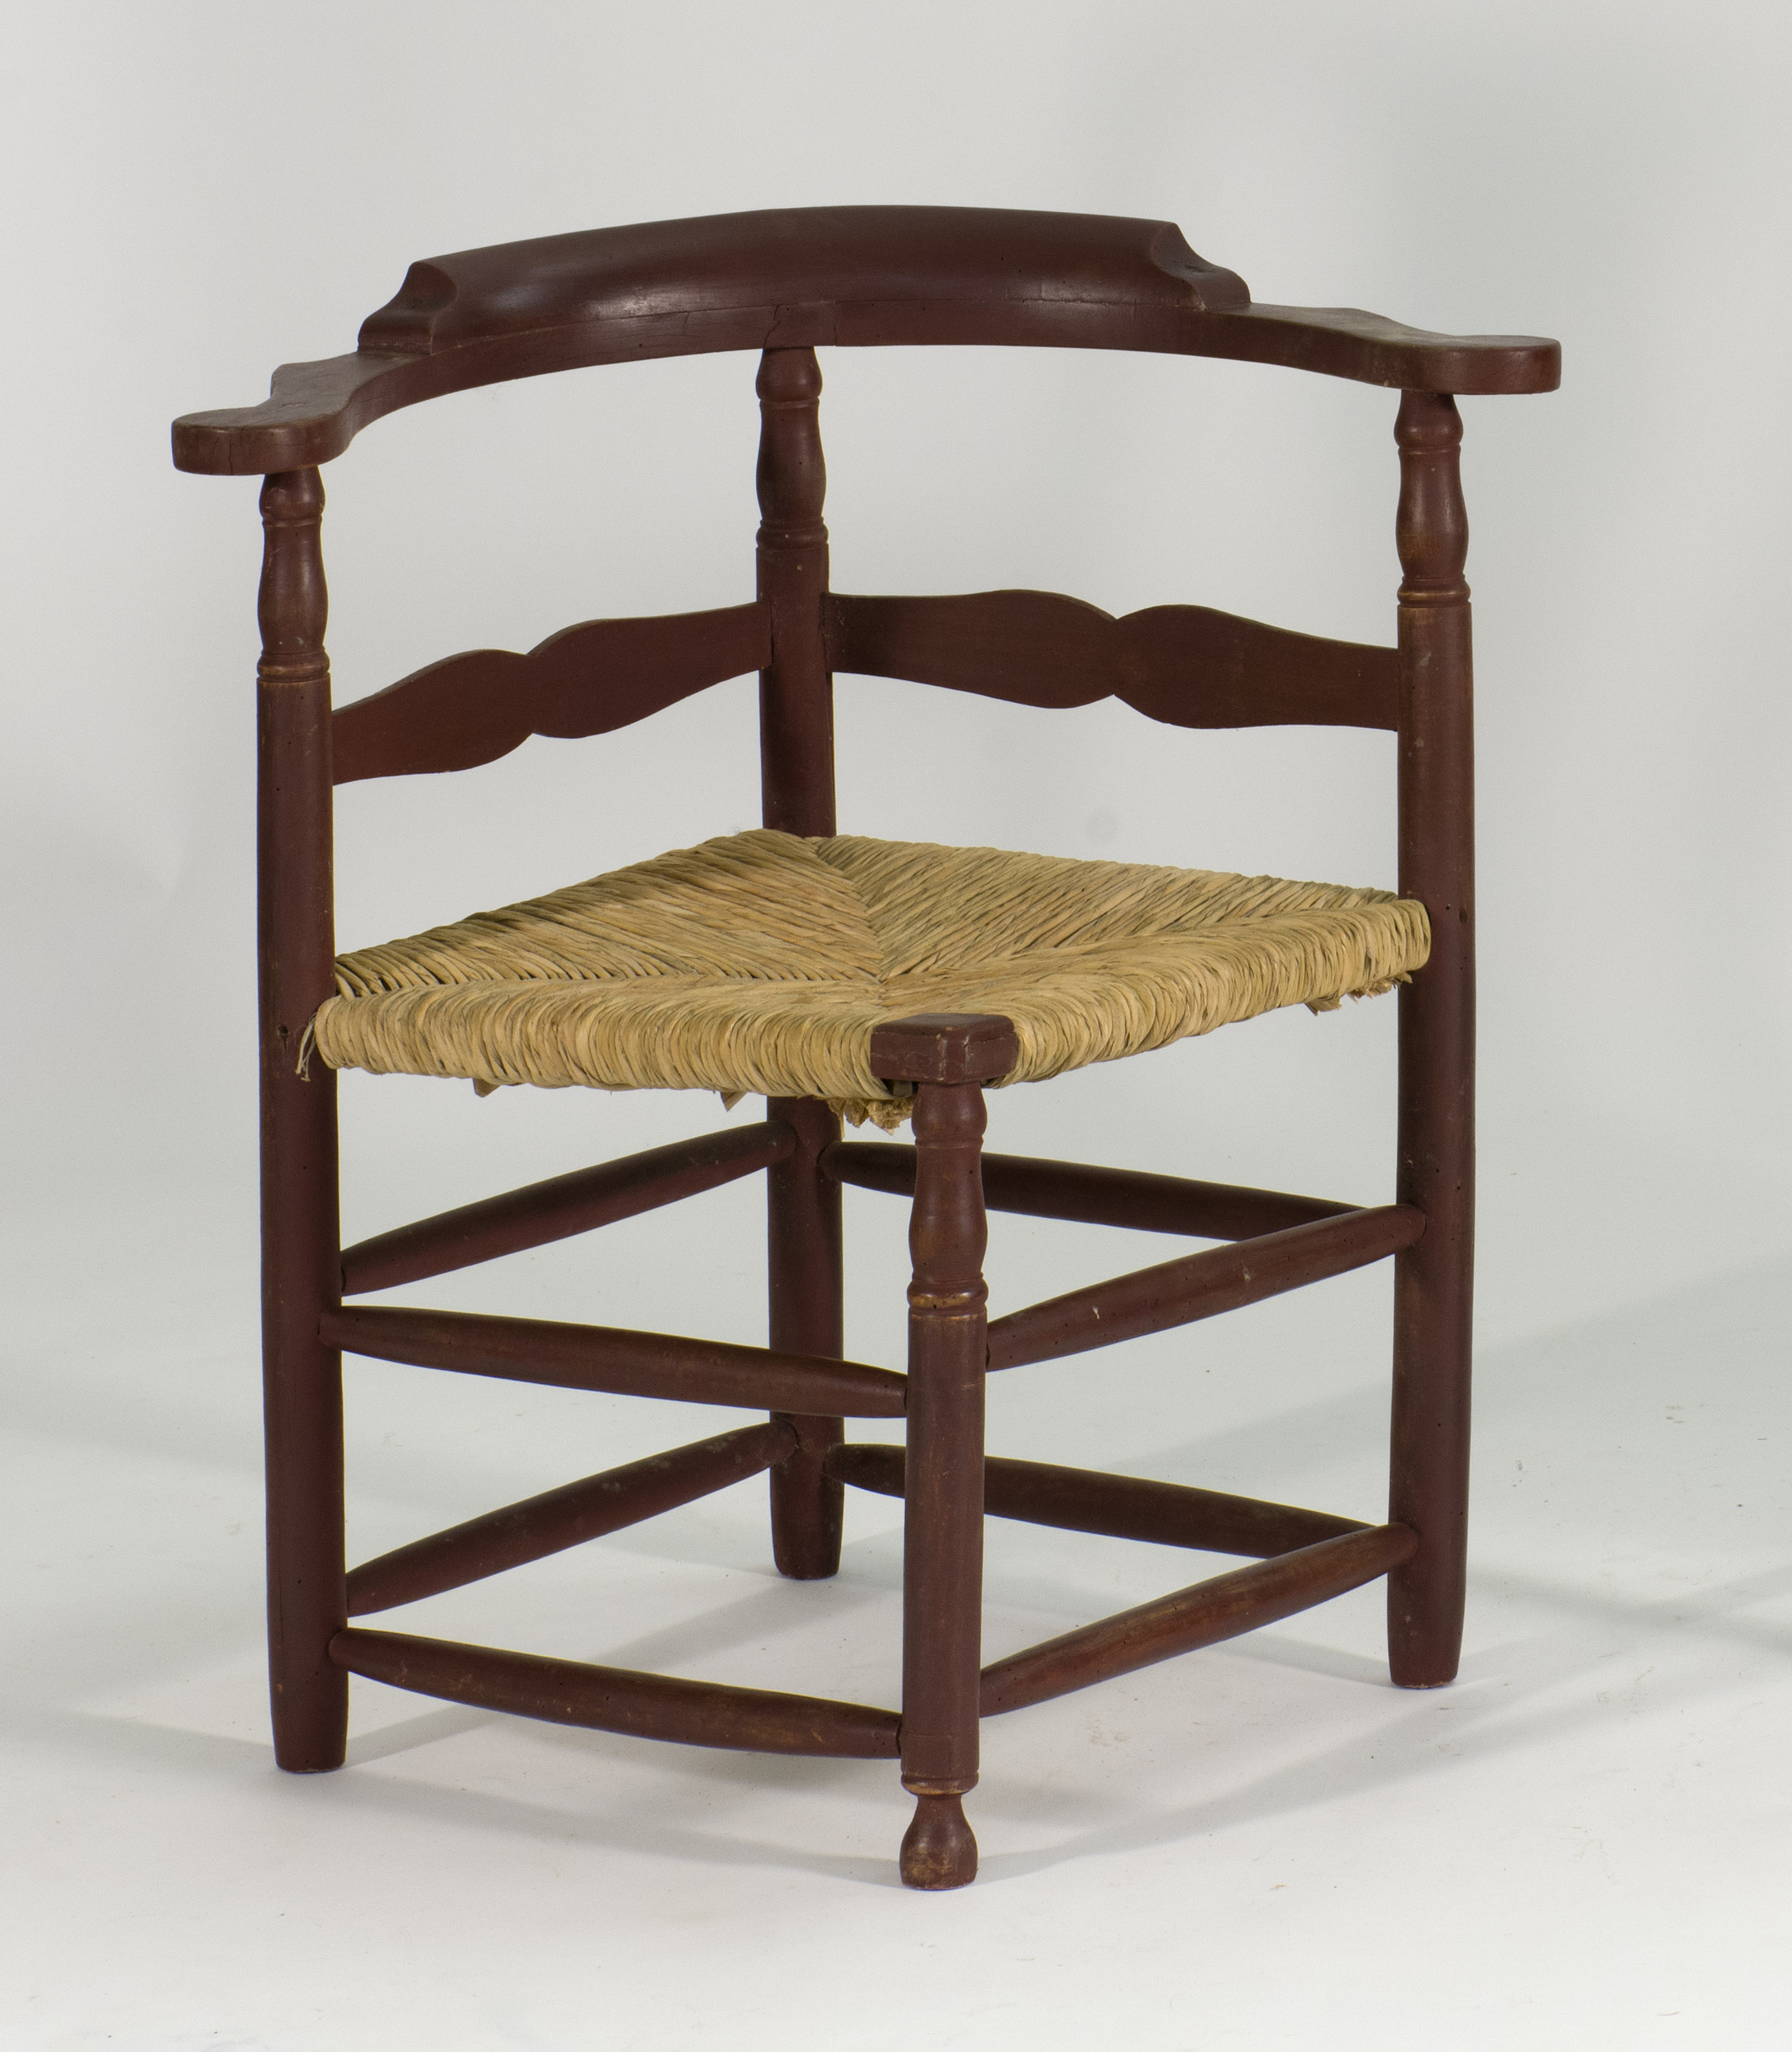 Price guide for ANTIQUE AMERICAN RUSH-SEAT CORNER CHAIR 18th